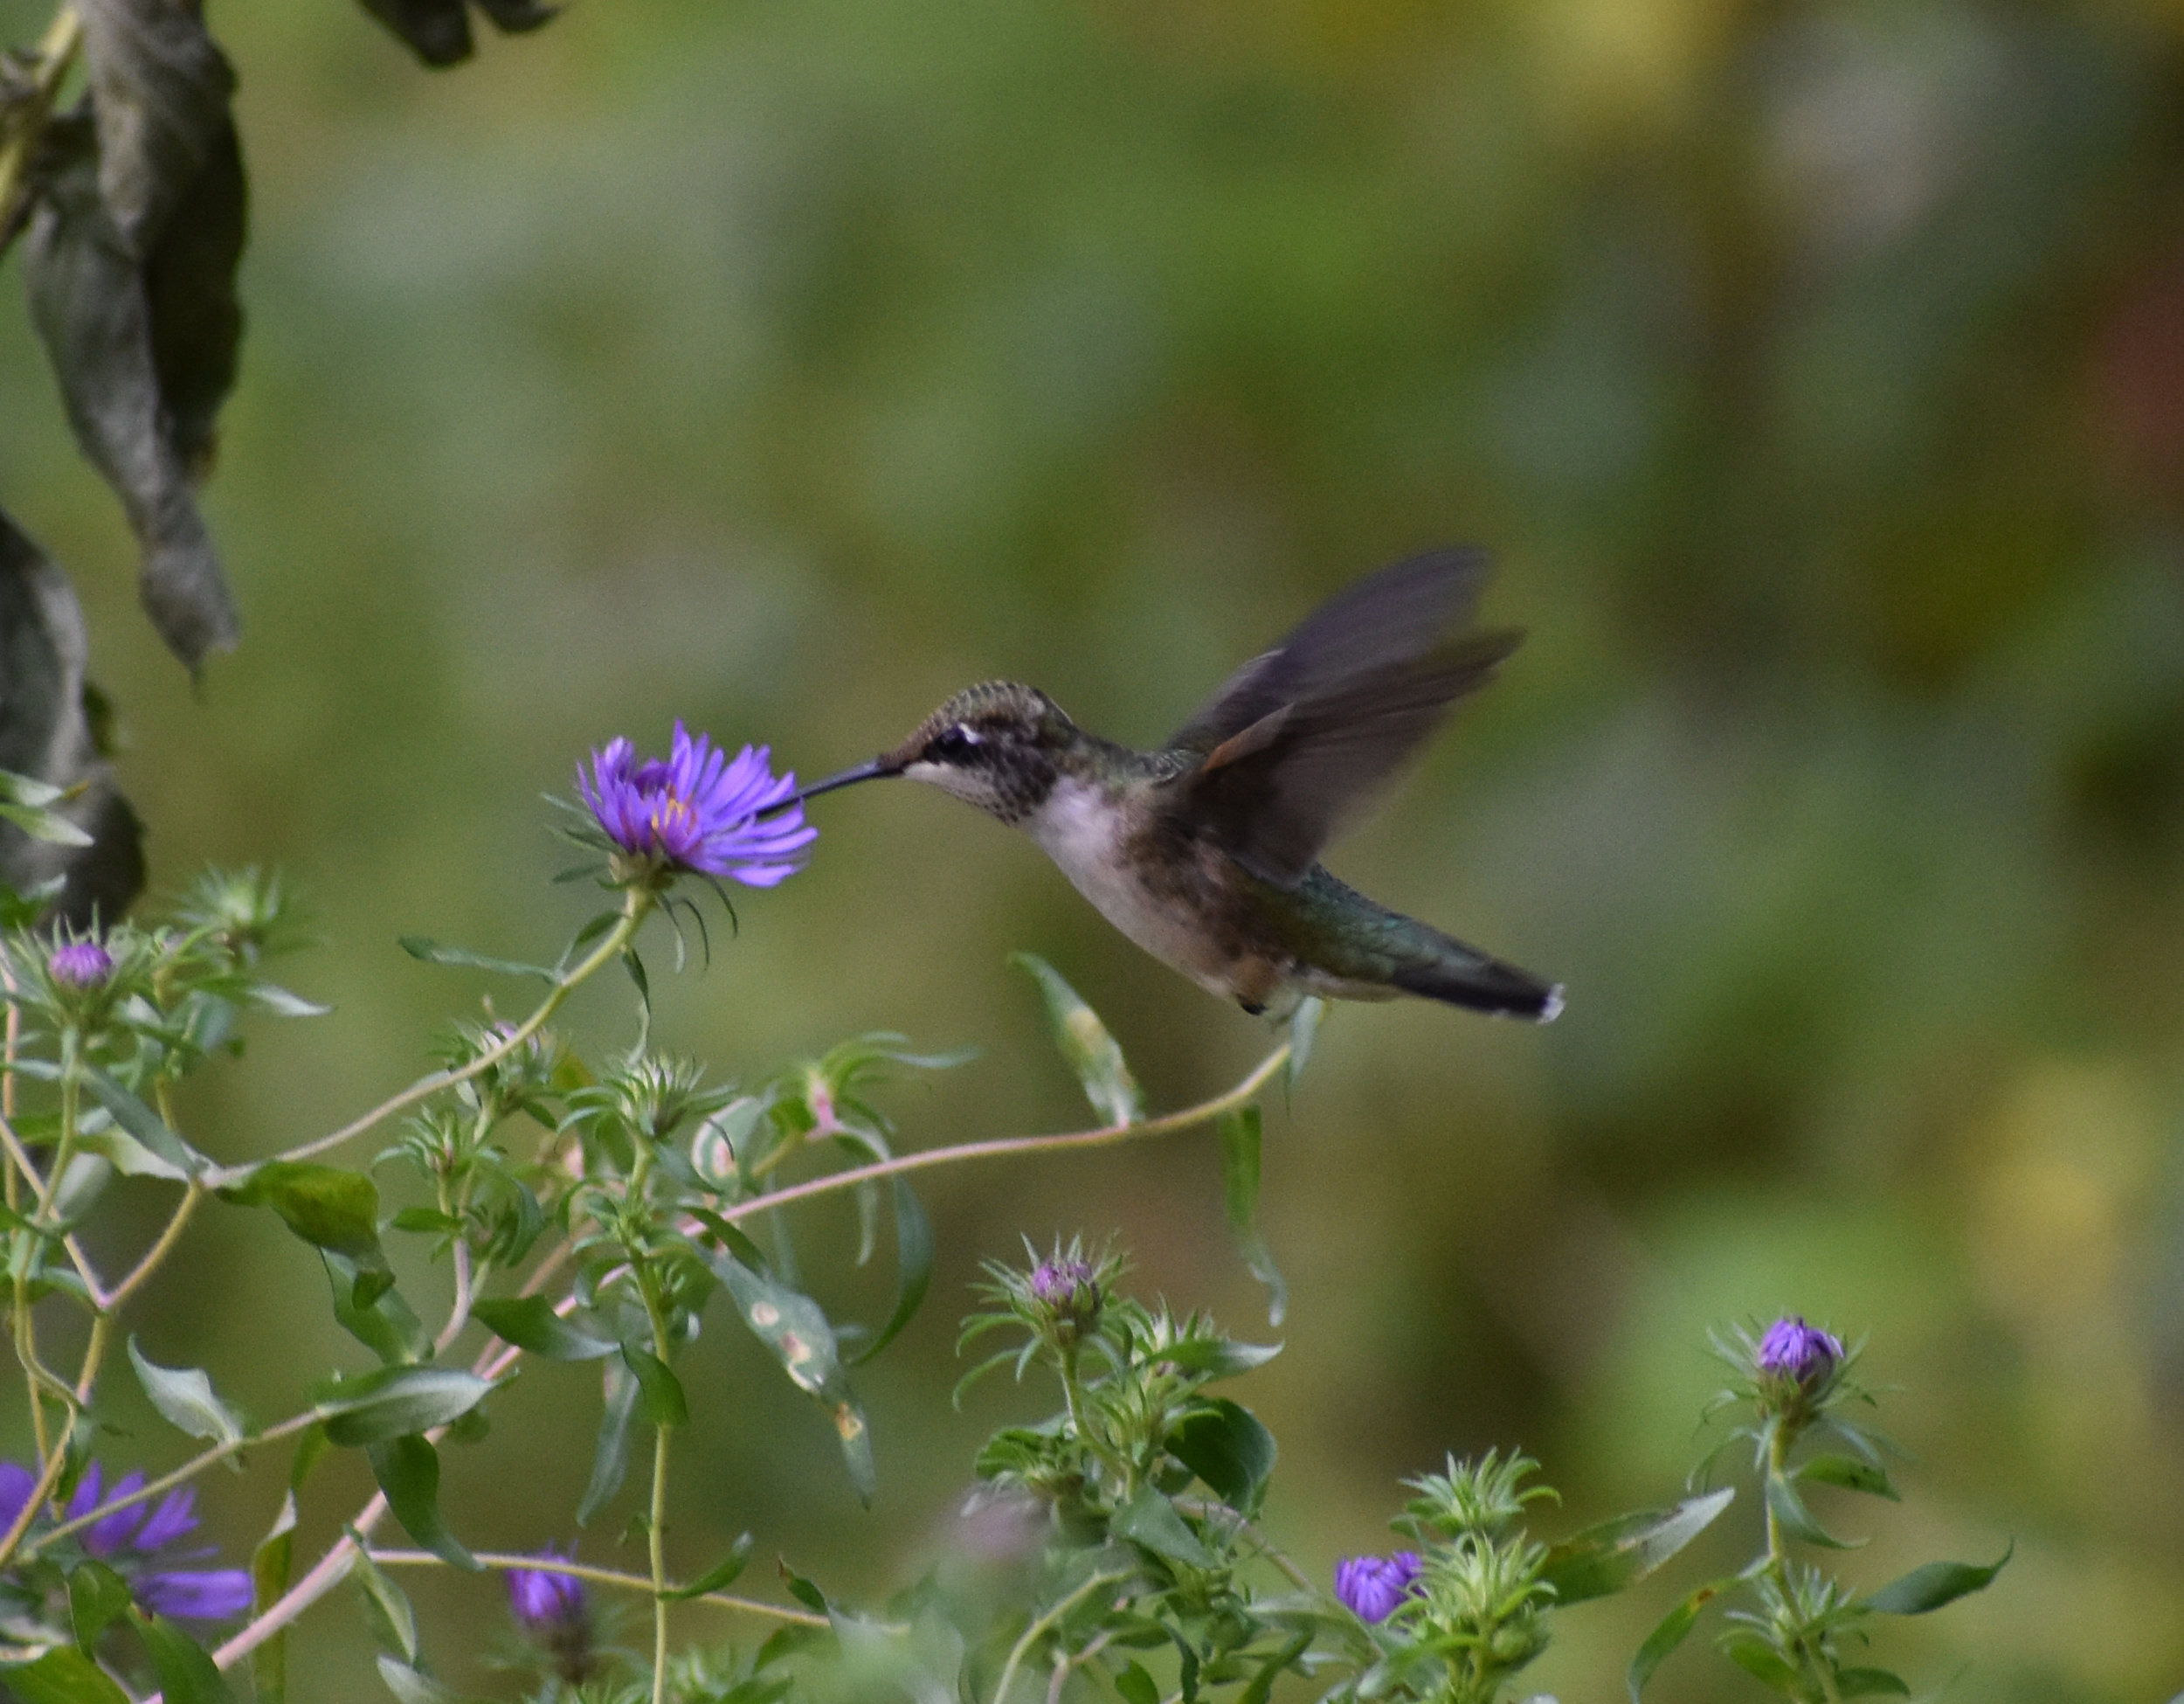 Ruby-Throated Hummingbird extracting nectar from New England Aster